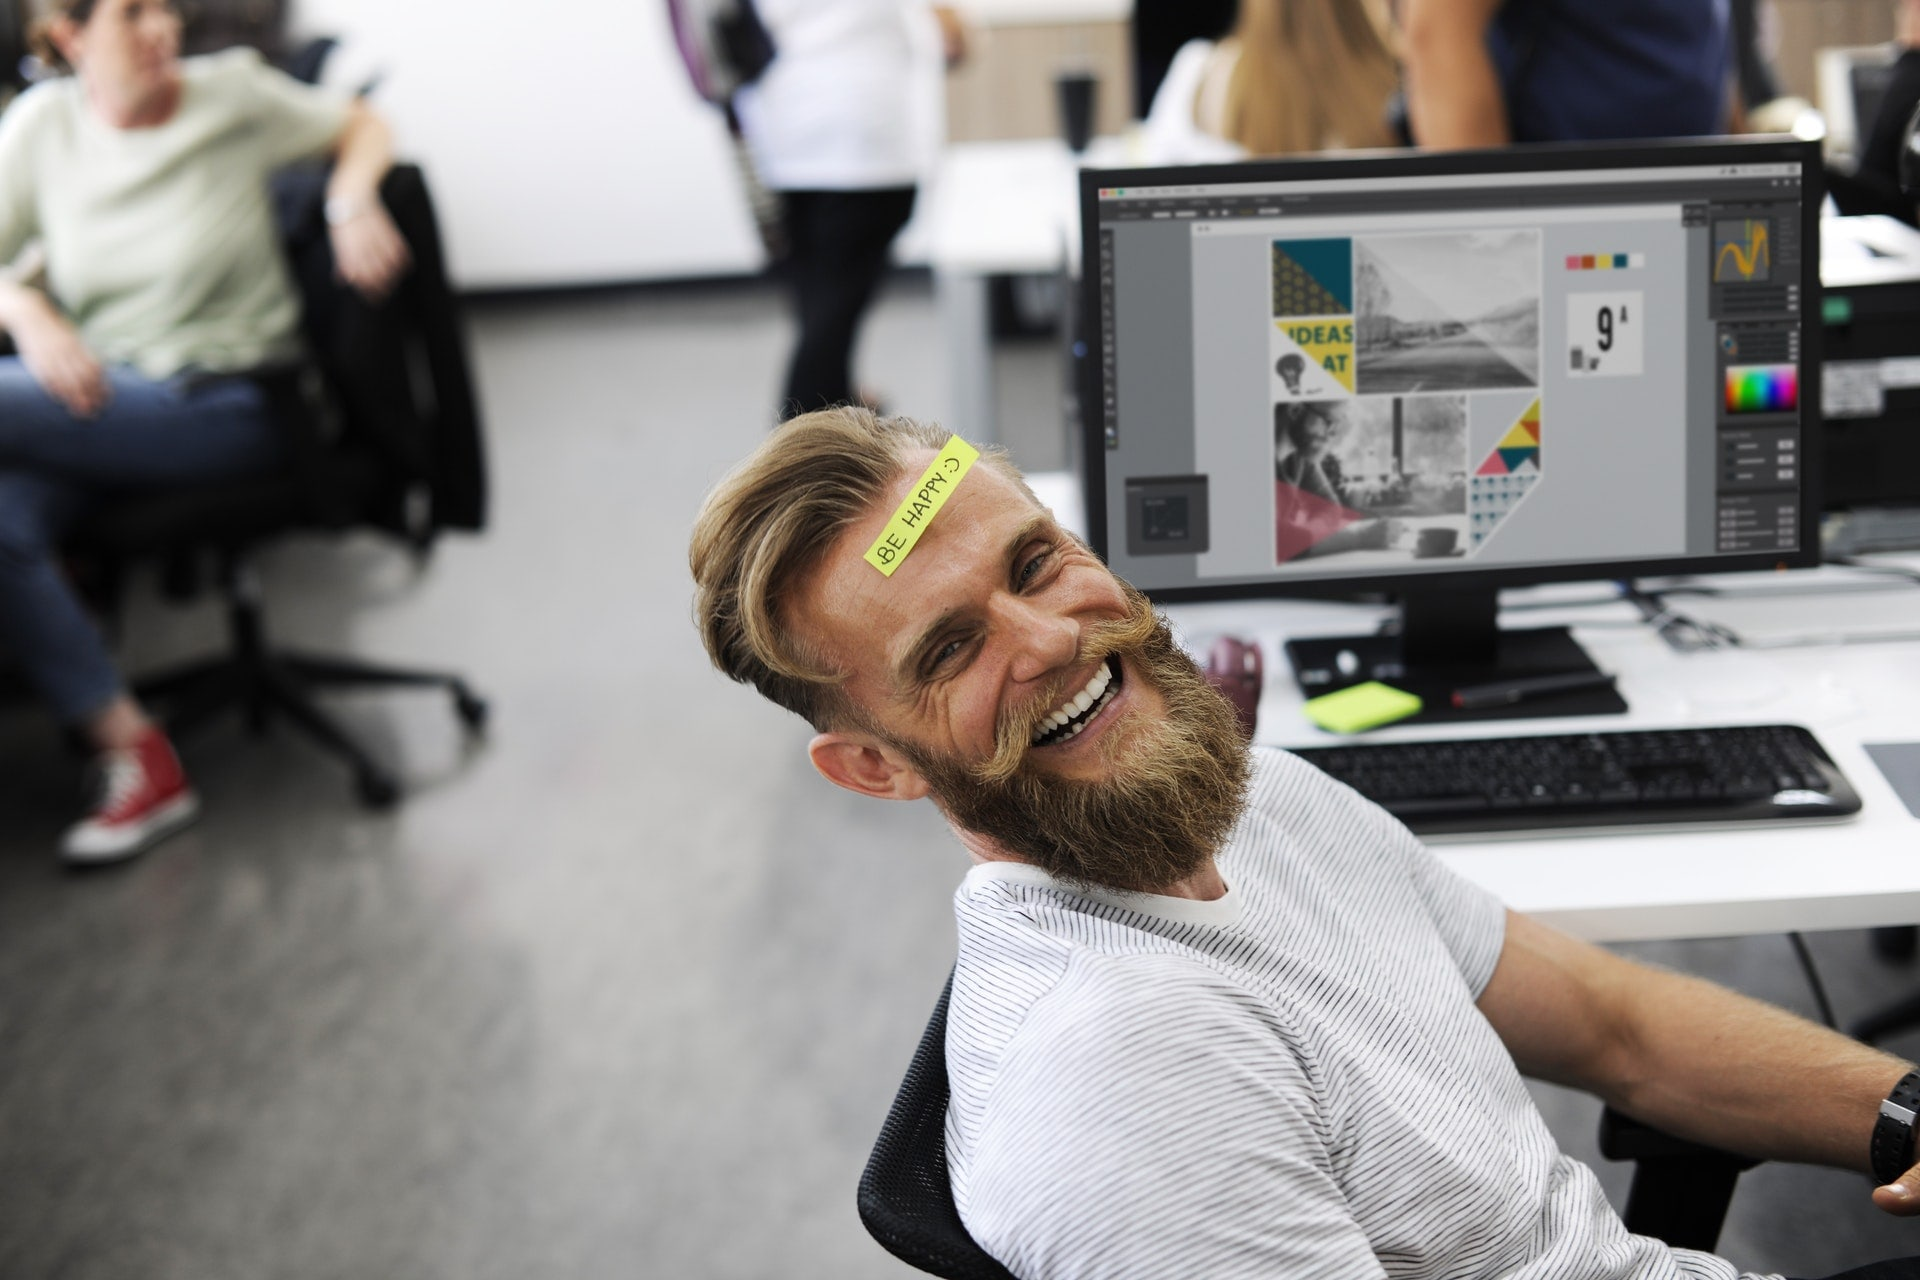 4 WAYS TO KEEP EMPLOYEES HAPPY